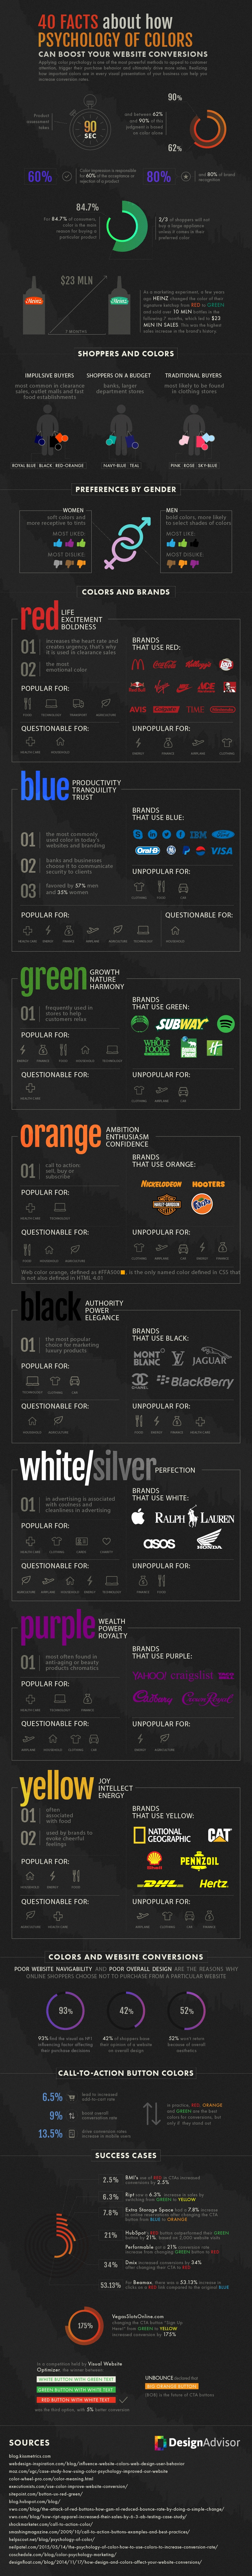 This infographic from Design Advisor illustrates how color choice in online design can effect website conversions.